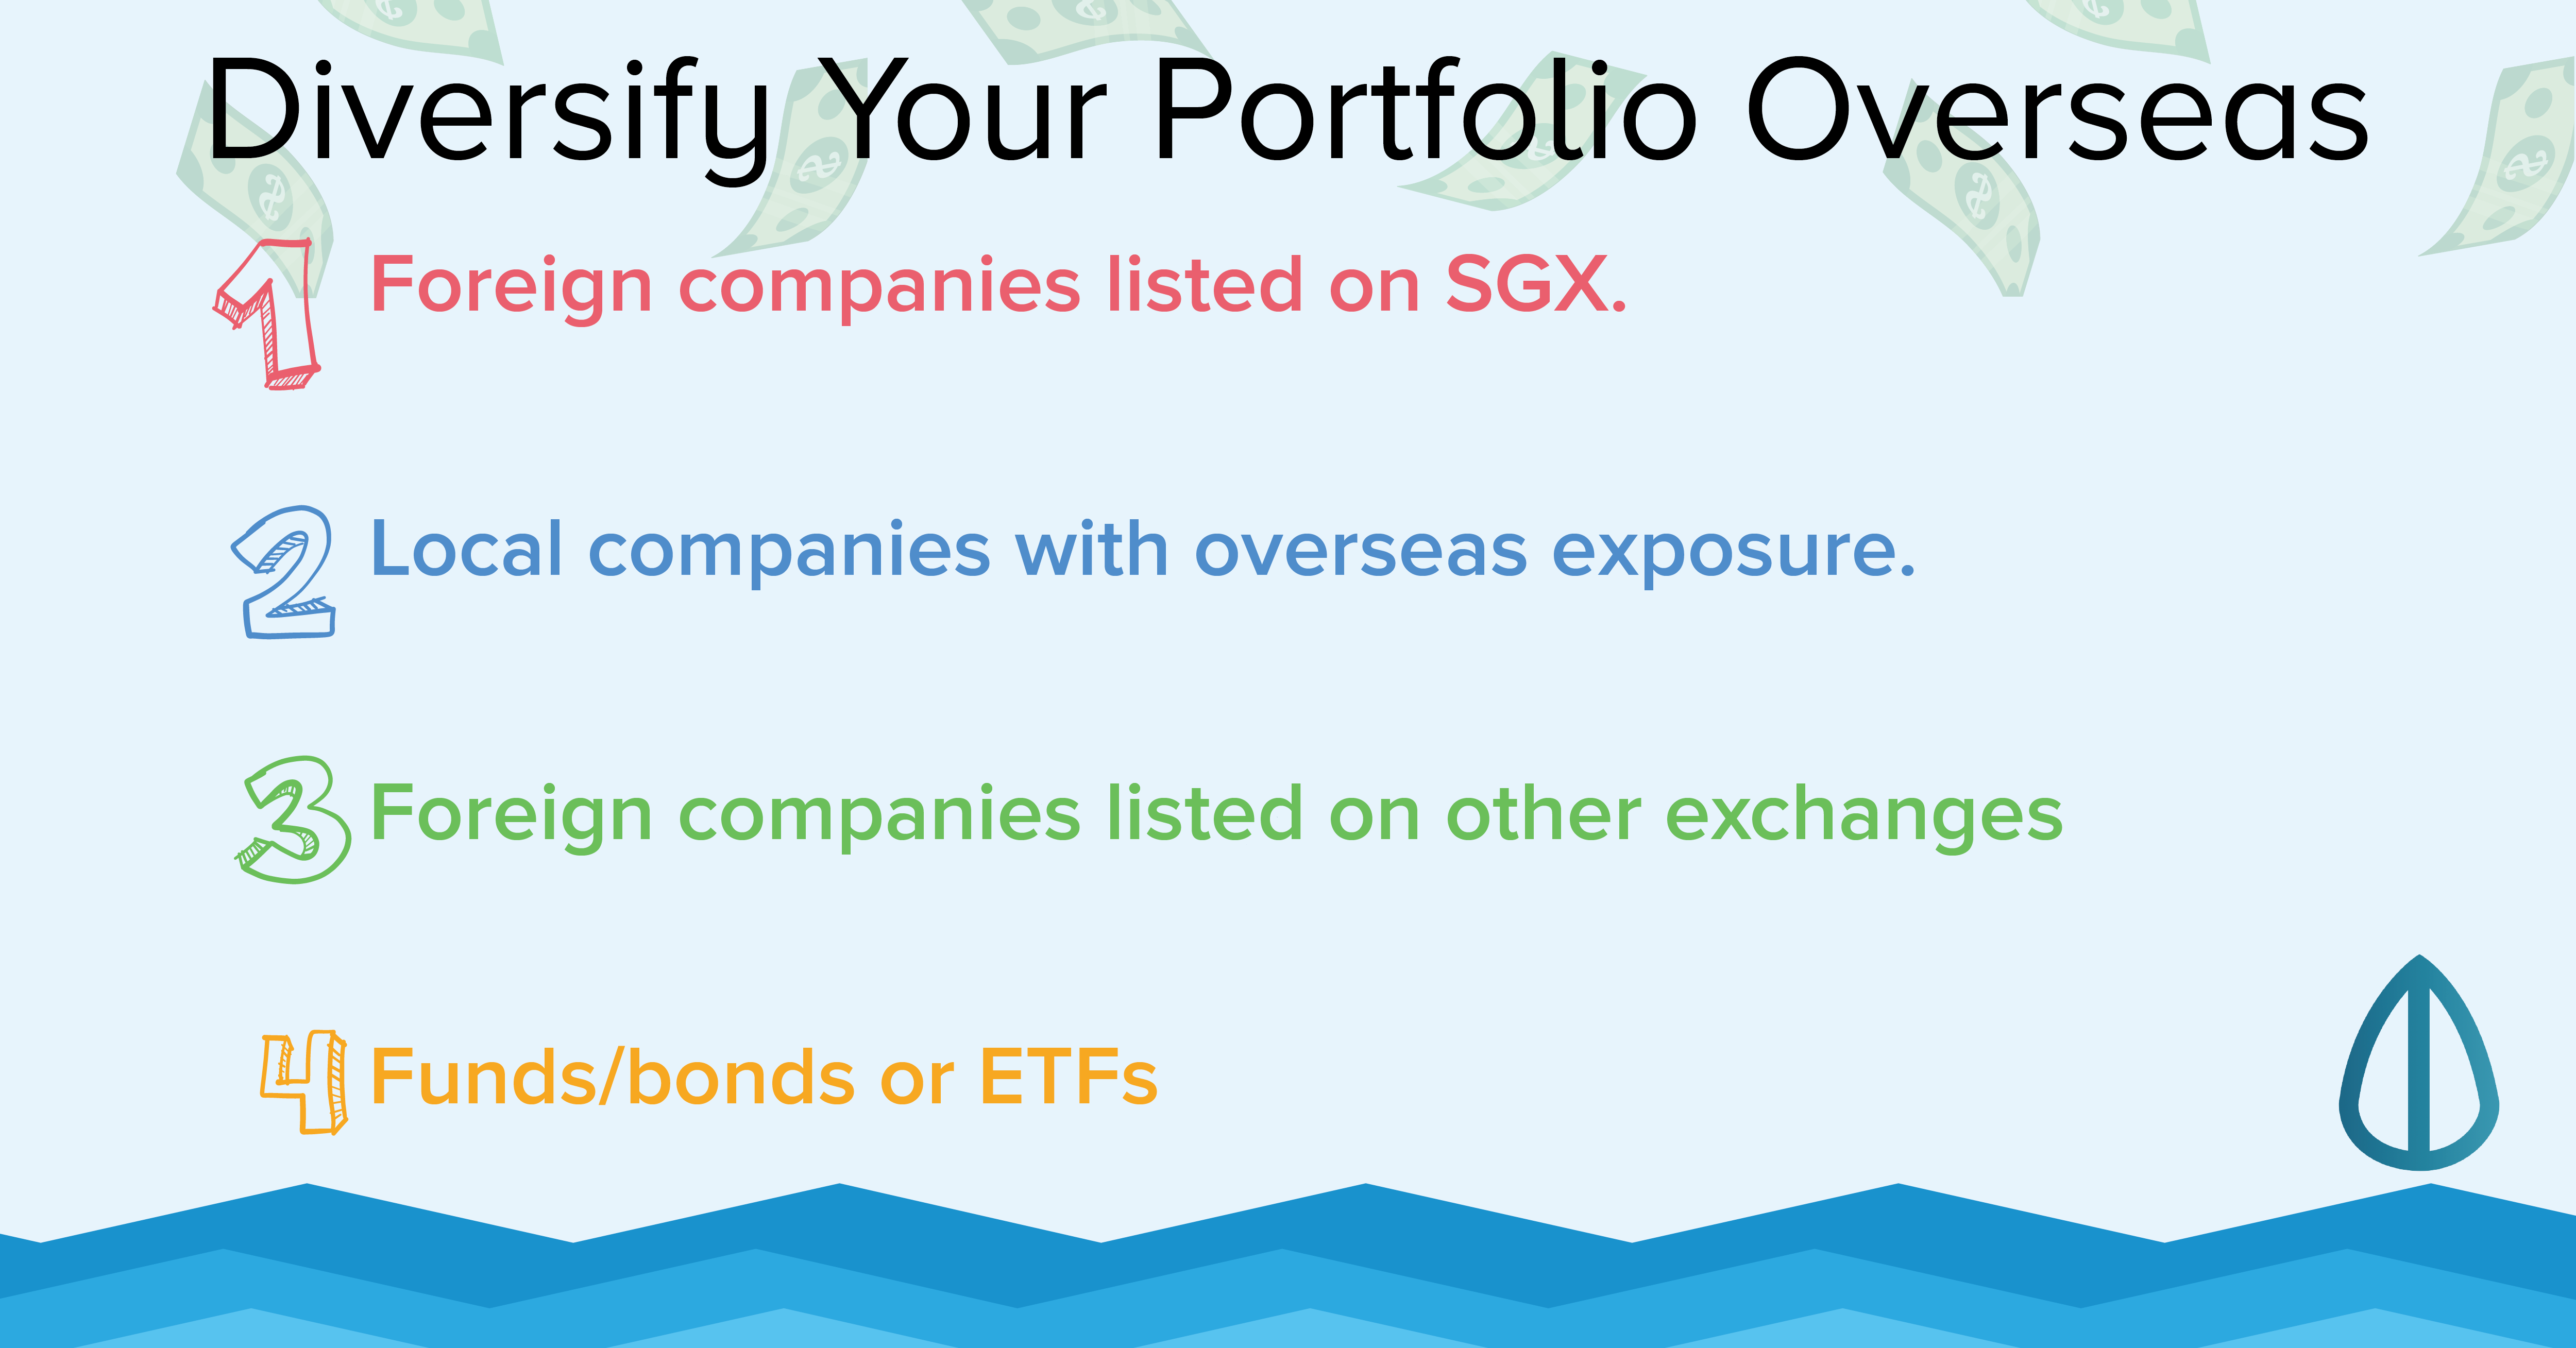 Working Adult: Diversify Your Portfolio Overseas For Better Investment Outcome